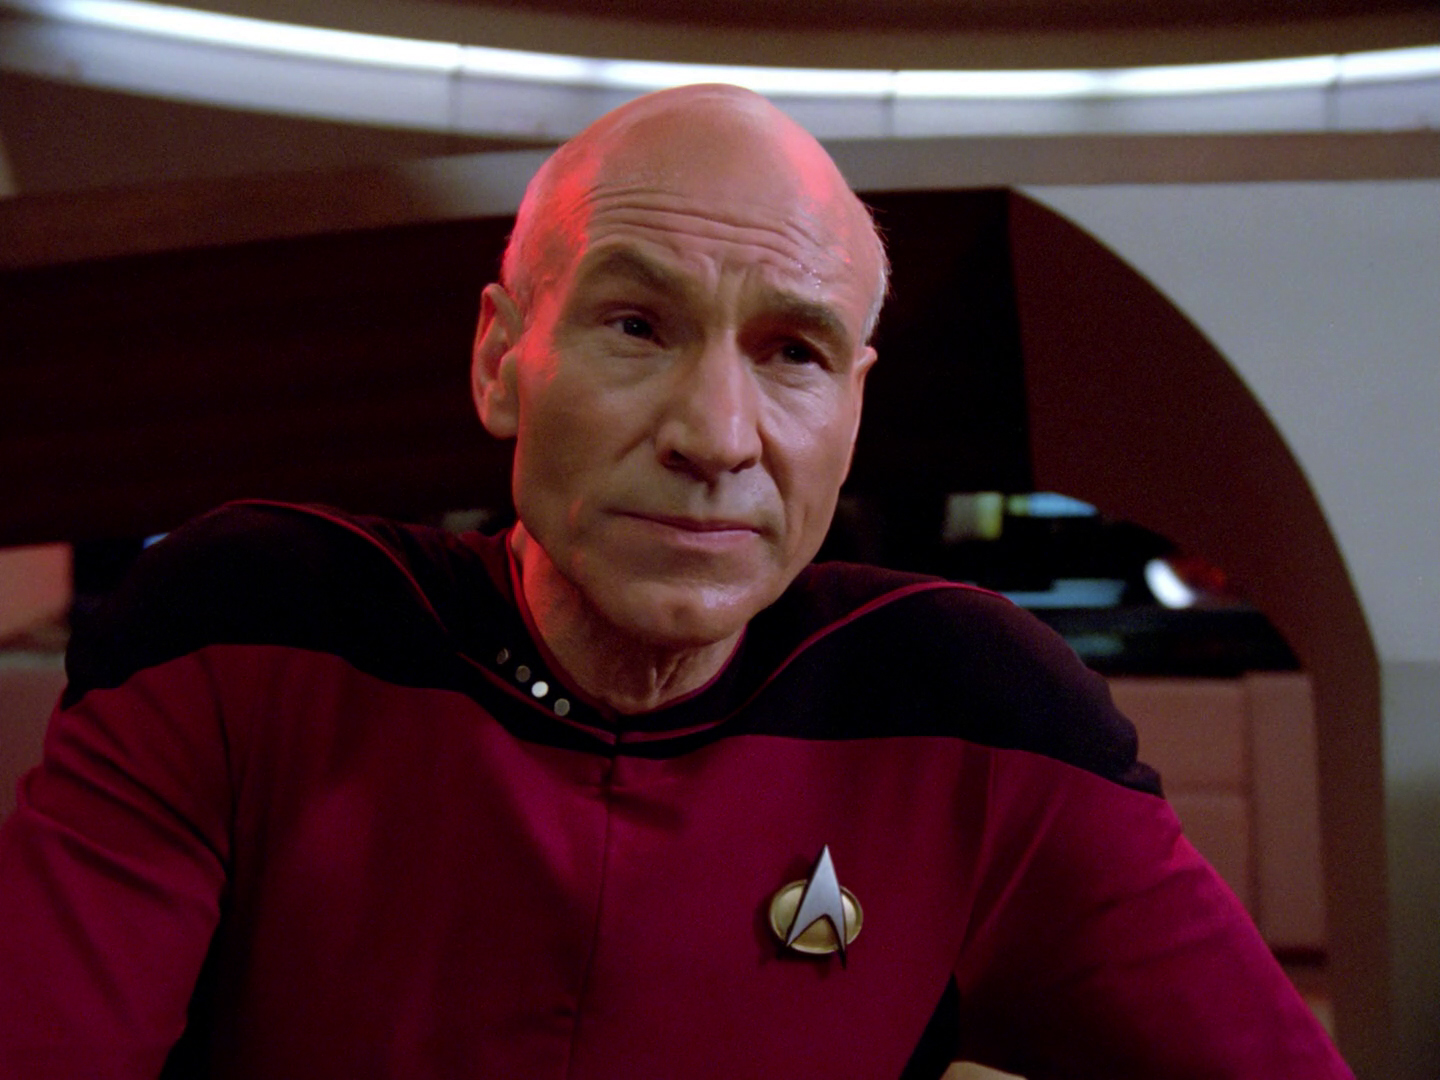 Picard_intoxicated.jpg